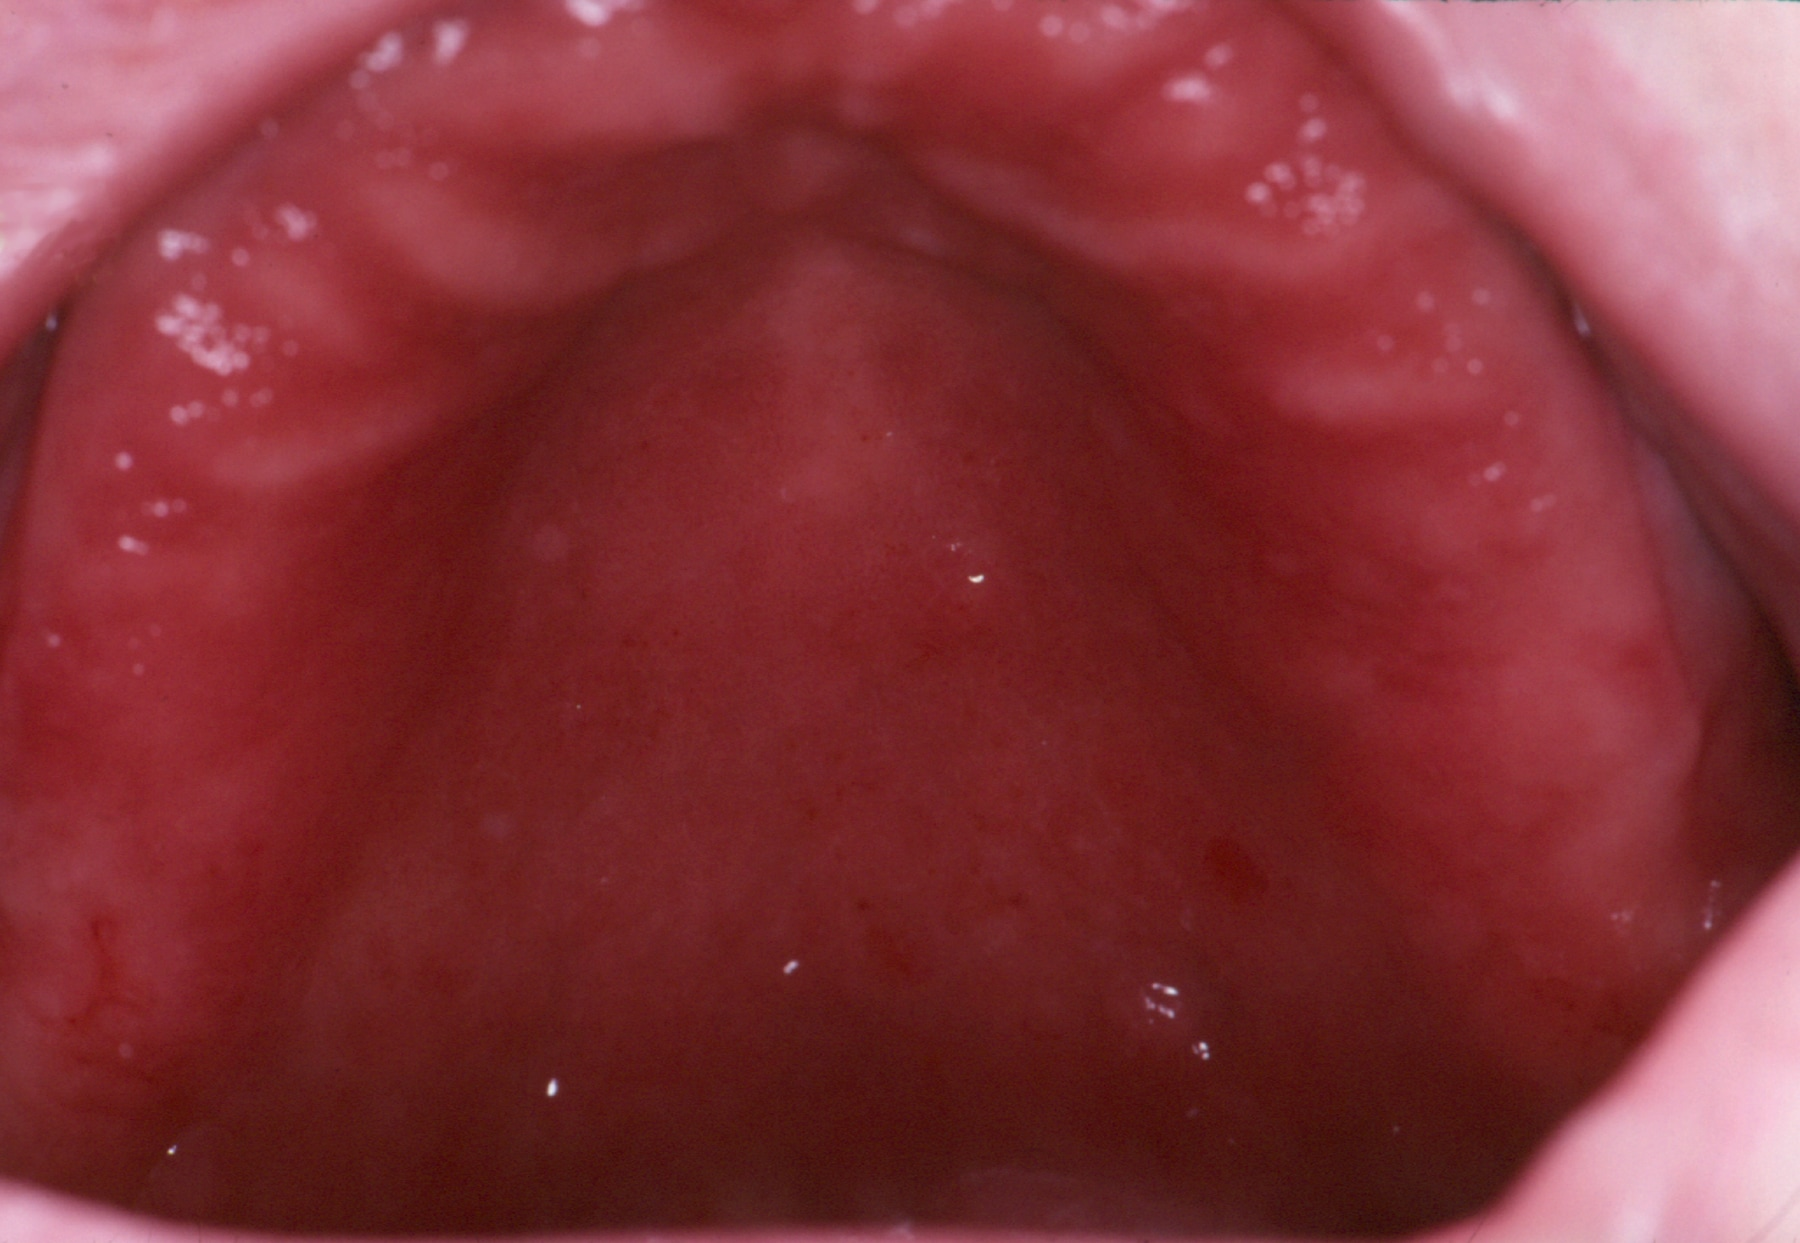 Stomatitis, Denture